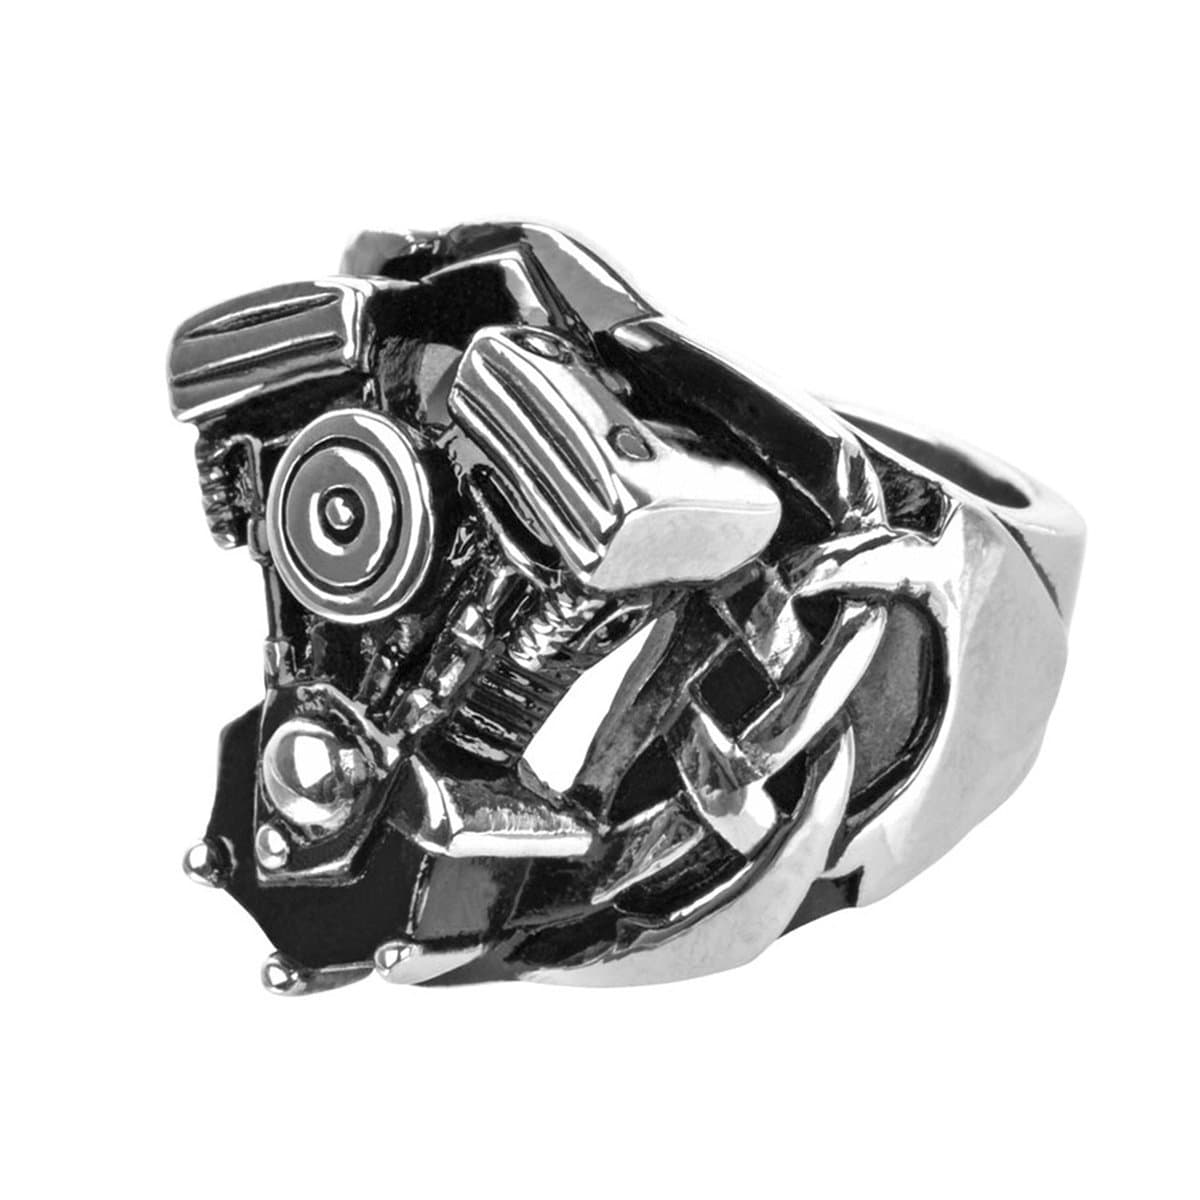 Darkened Silver Stainless Steel Motorcycle Engine Ring - Inox Jewelry India